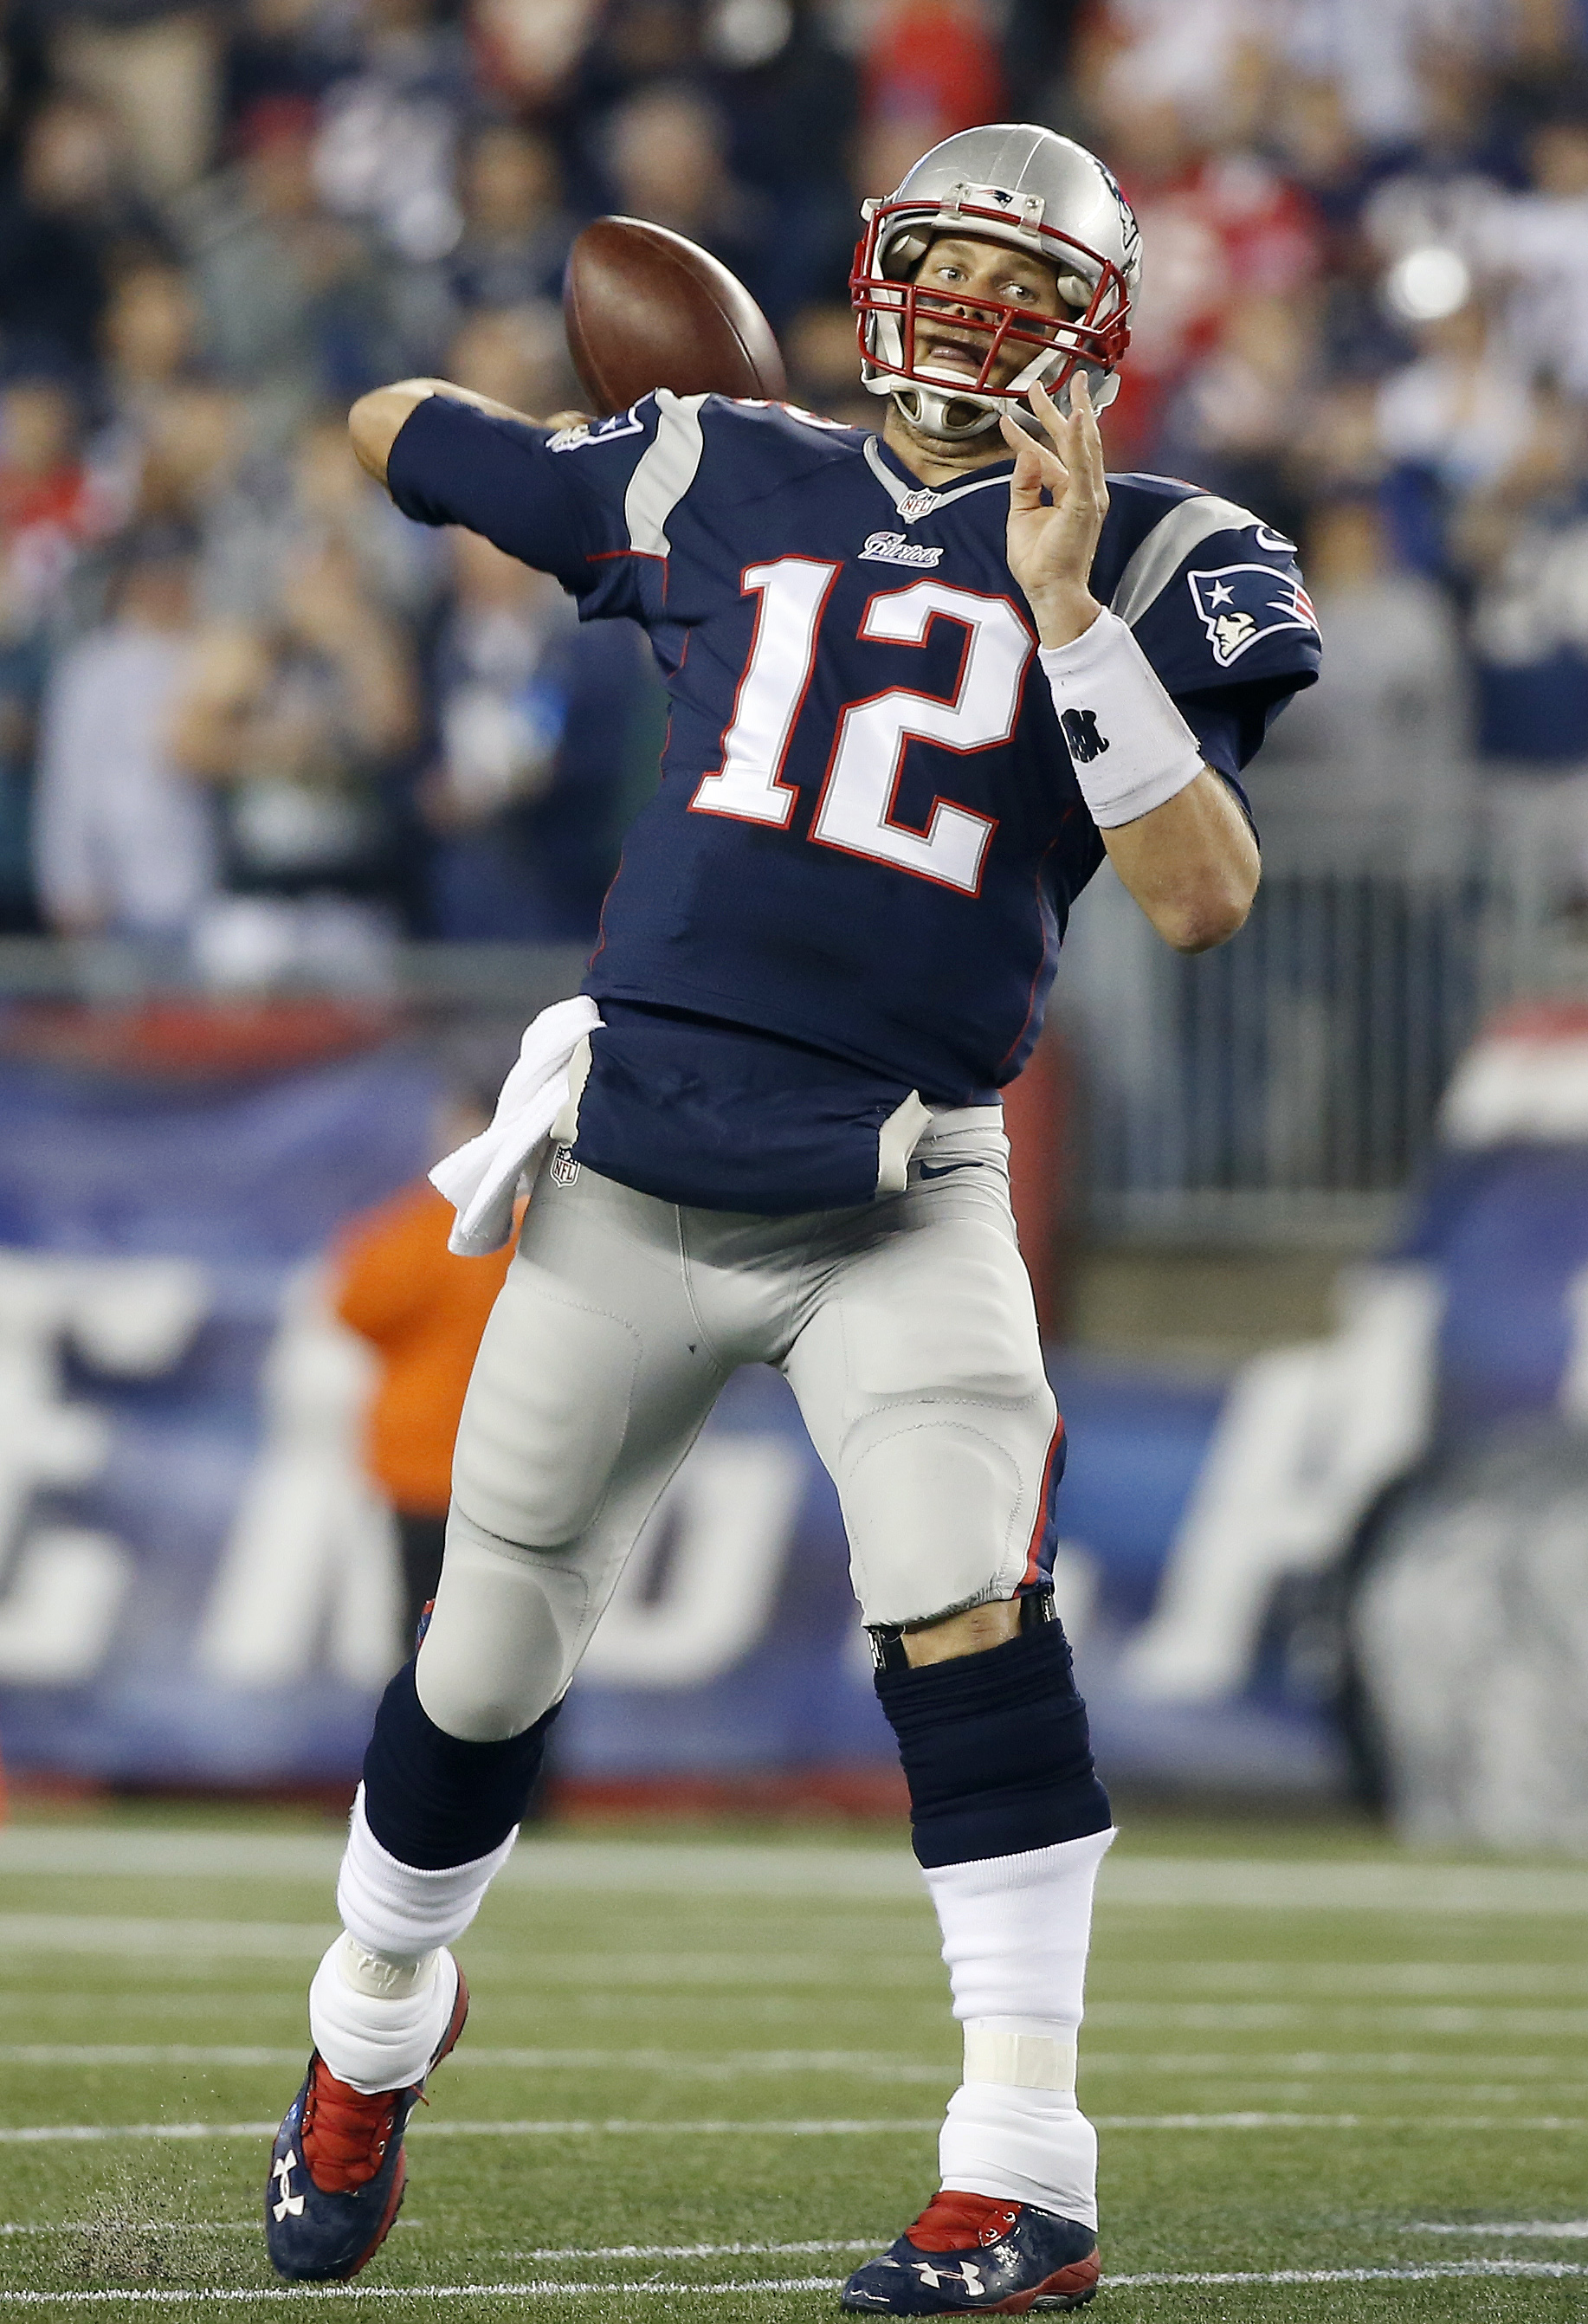 Jets at Patriots in AFC East matchup - The Portland Press ...